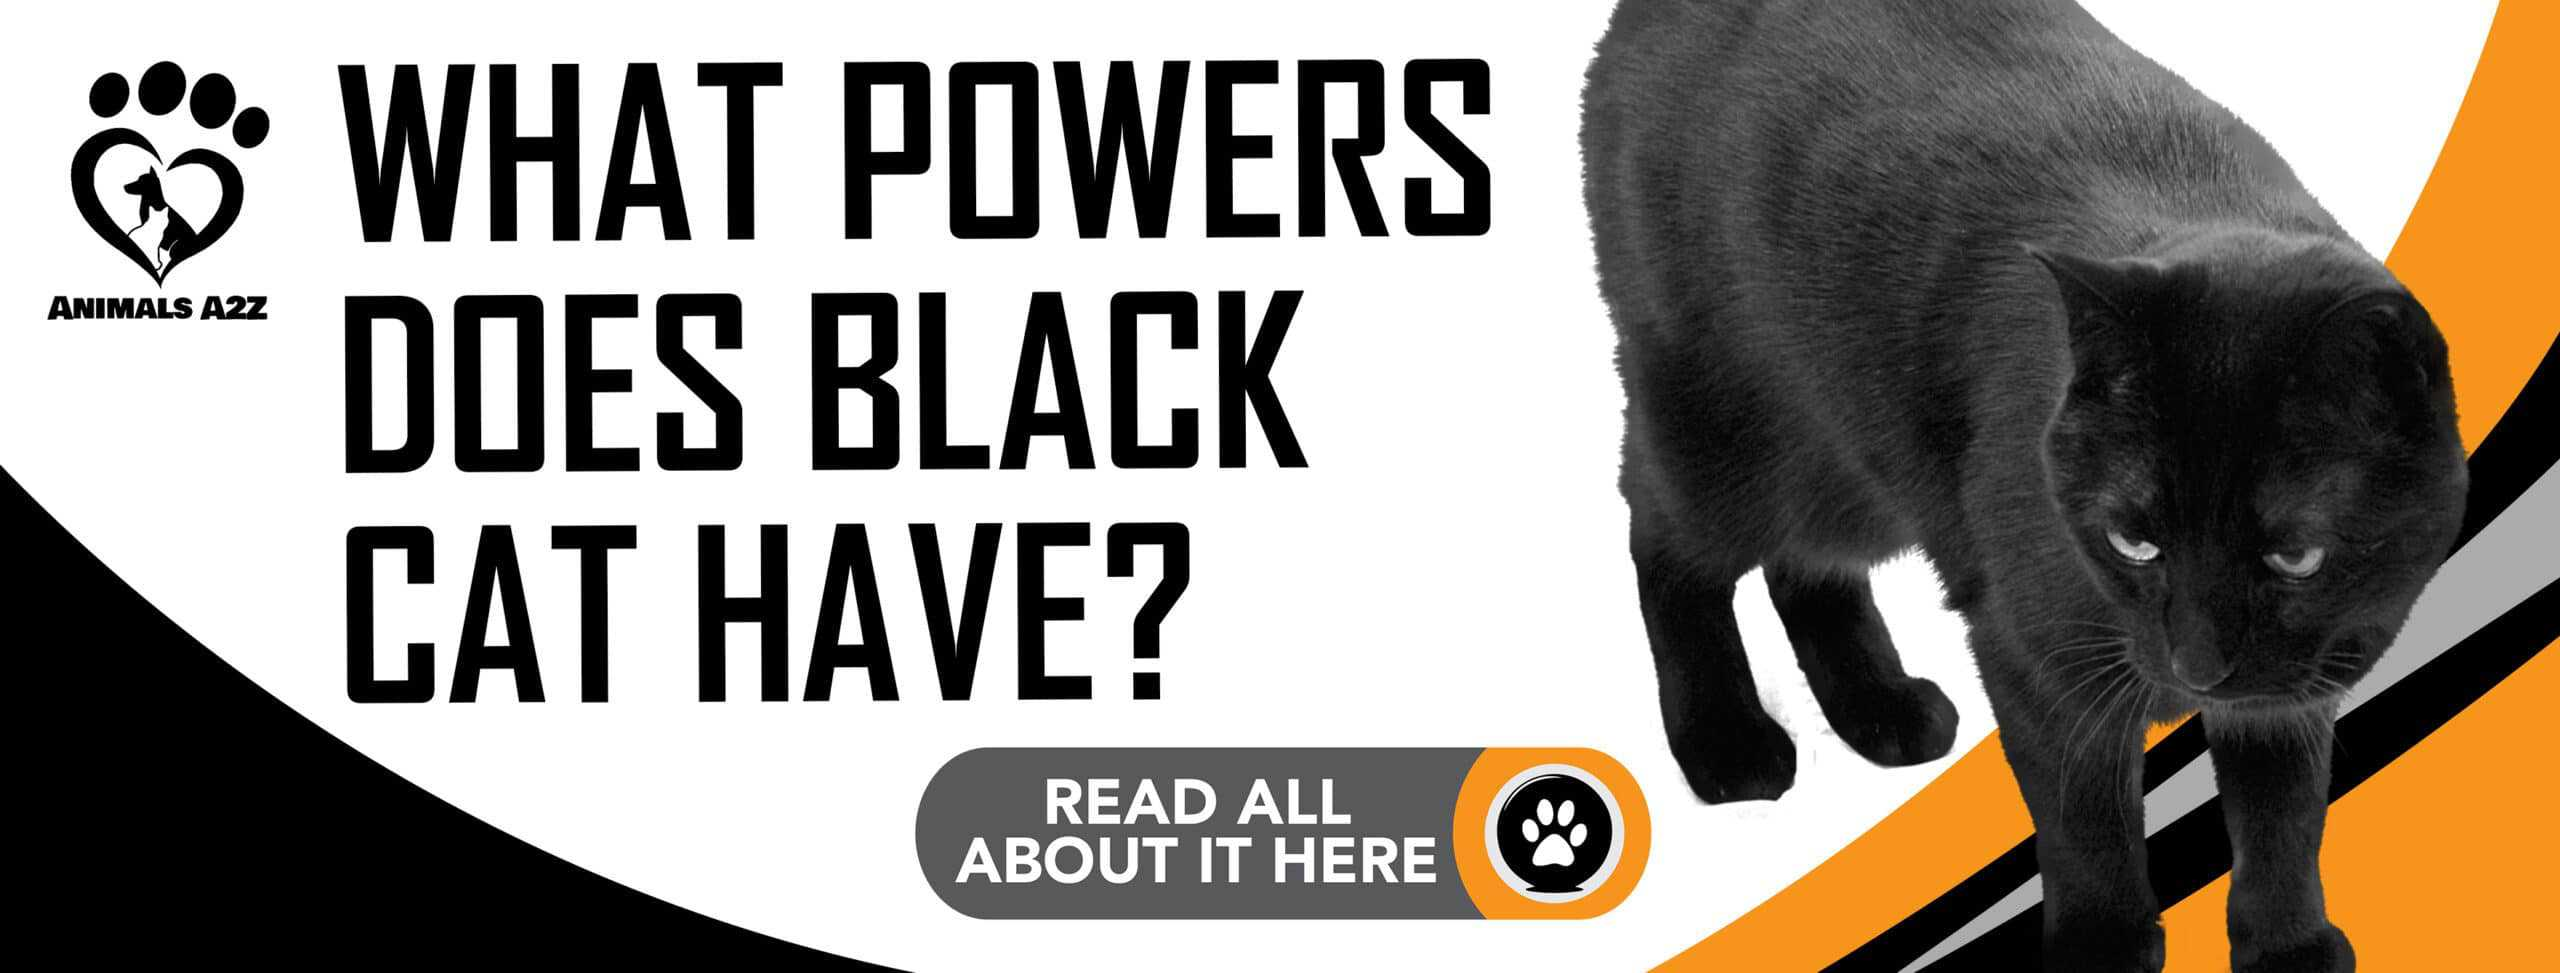 What powers does black cat have